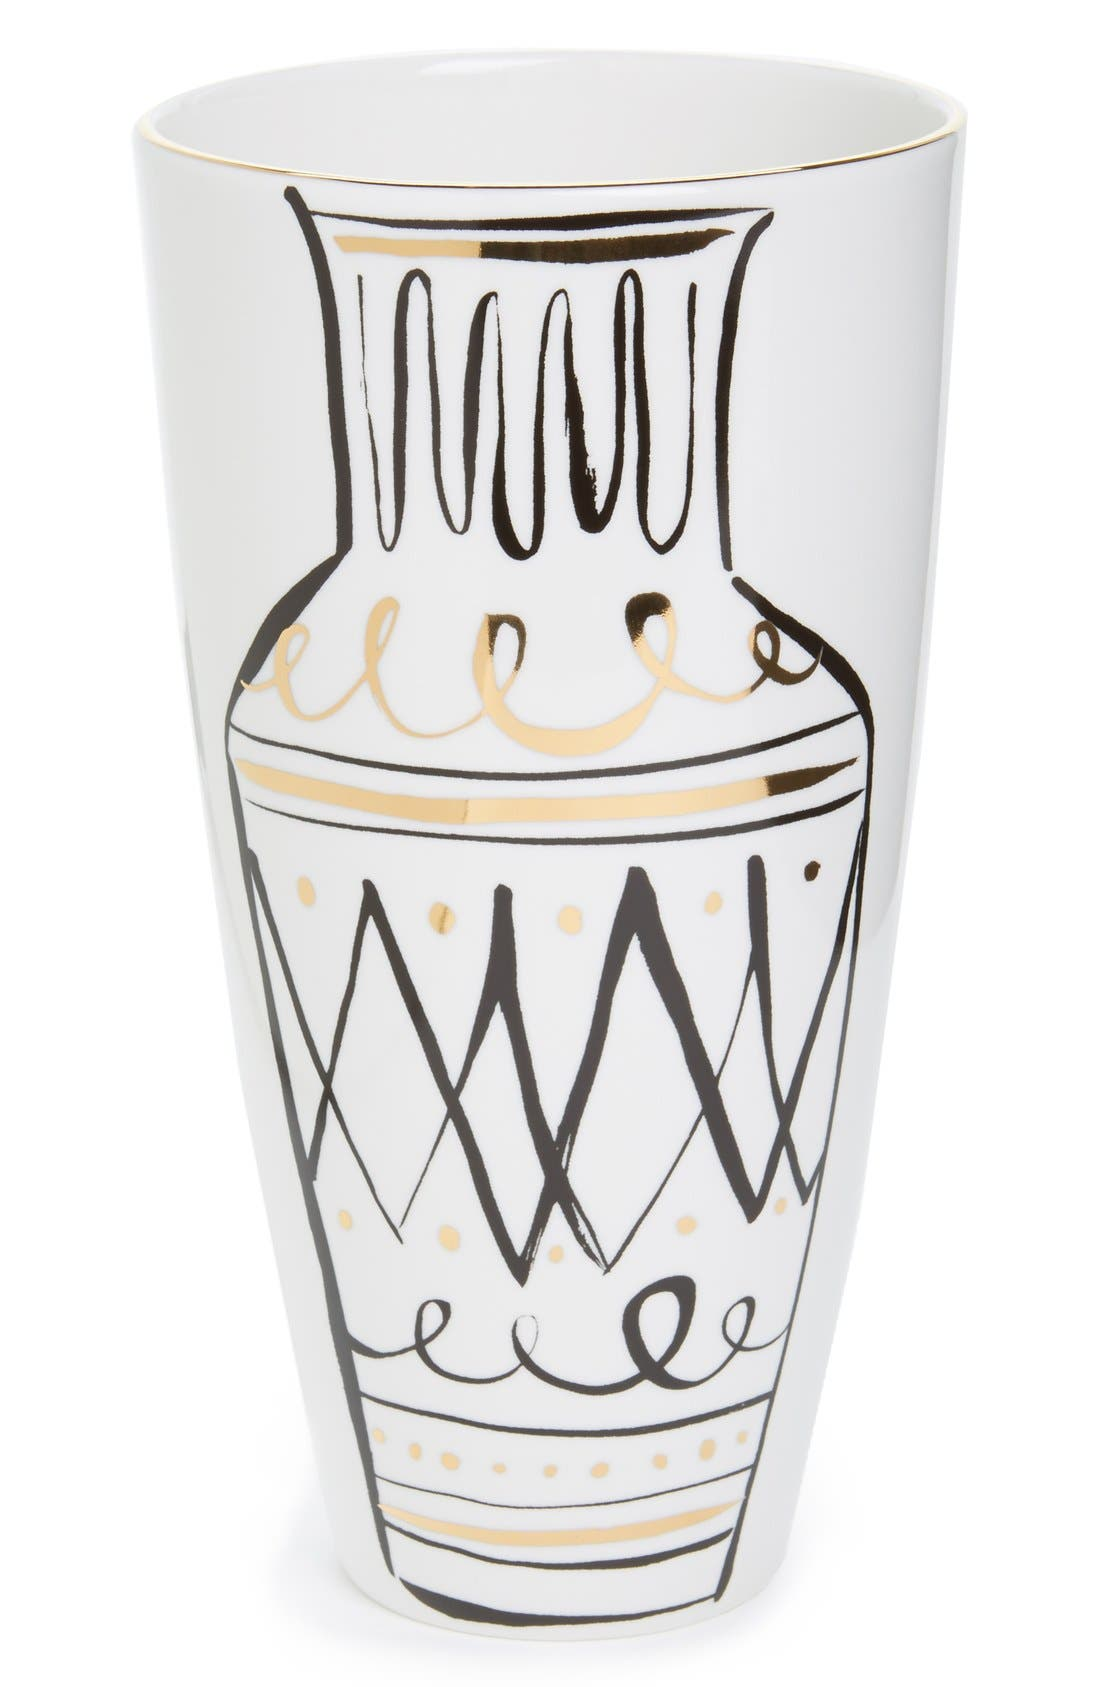 Alternate Image 1 Selected - kate spade new york 'chinoiserie' vase